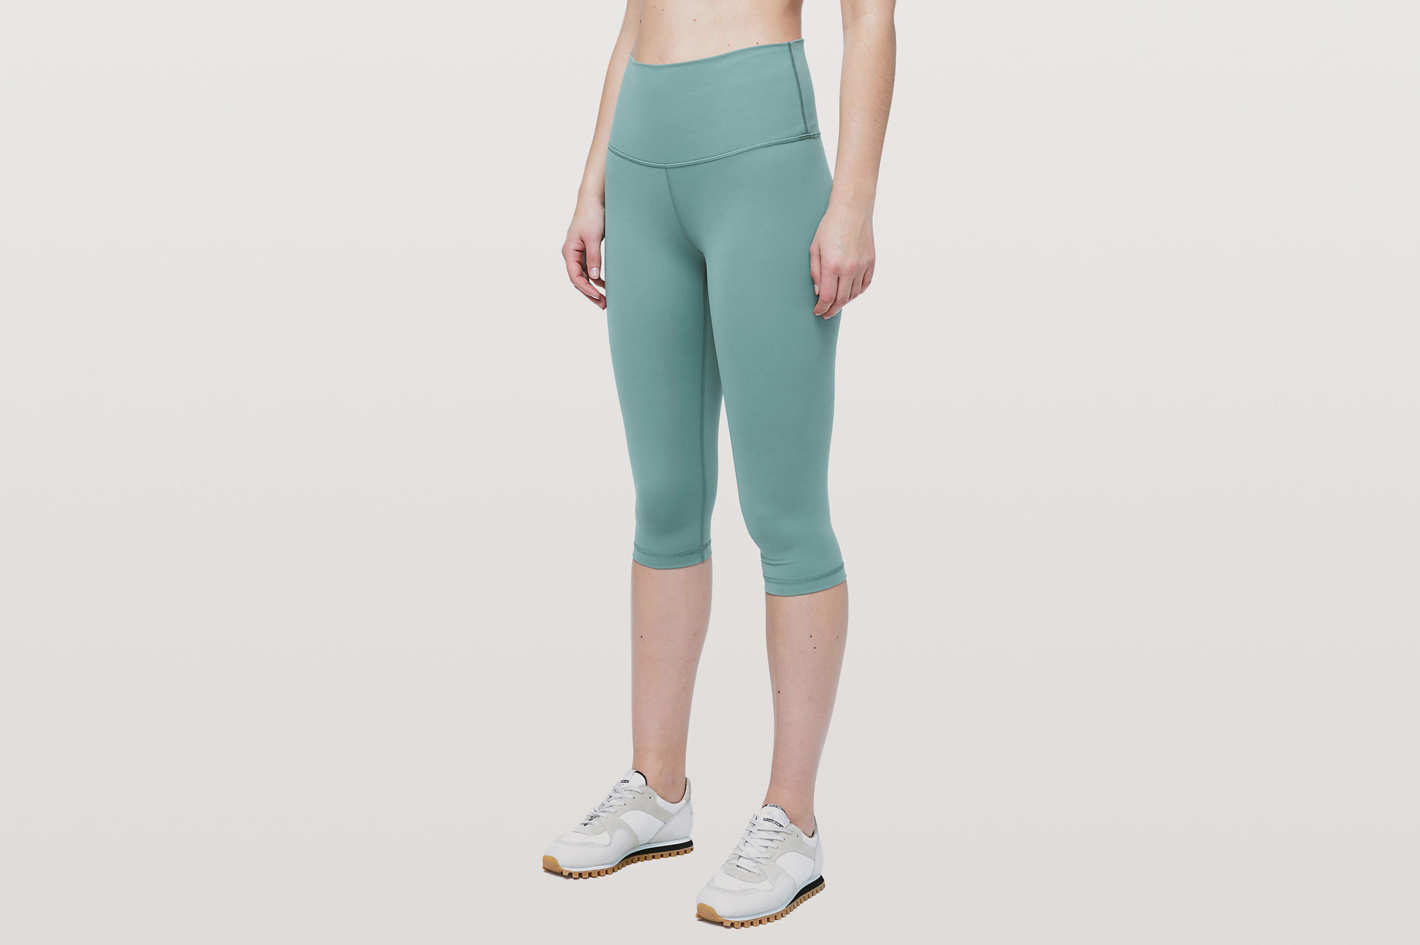 Lululemon Wunder Under High-Rise 1/2 Tight